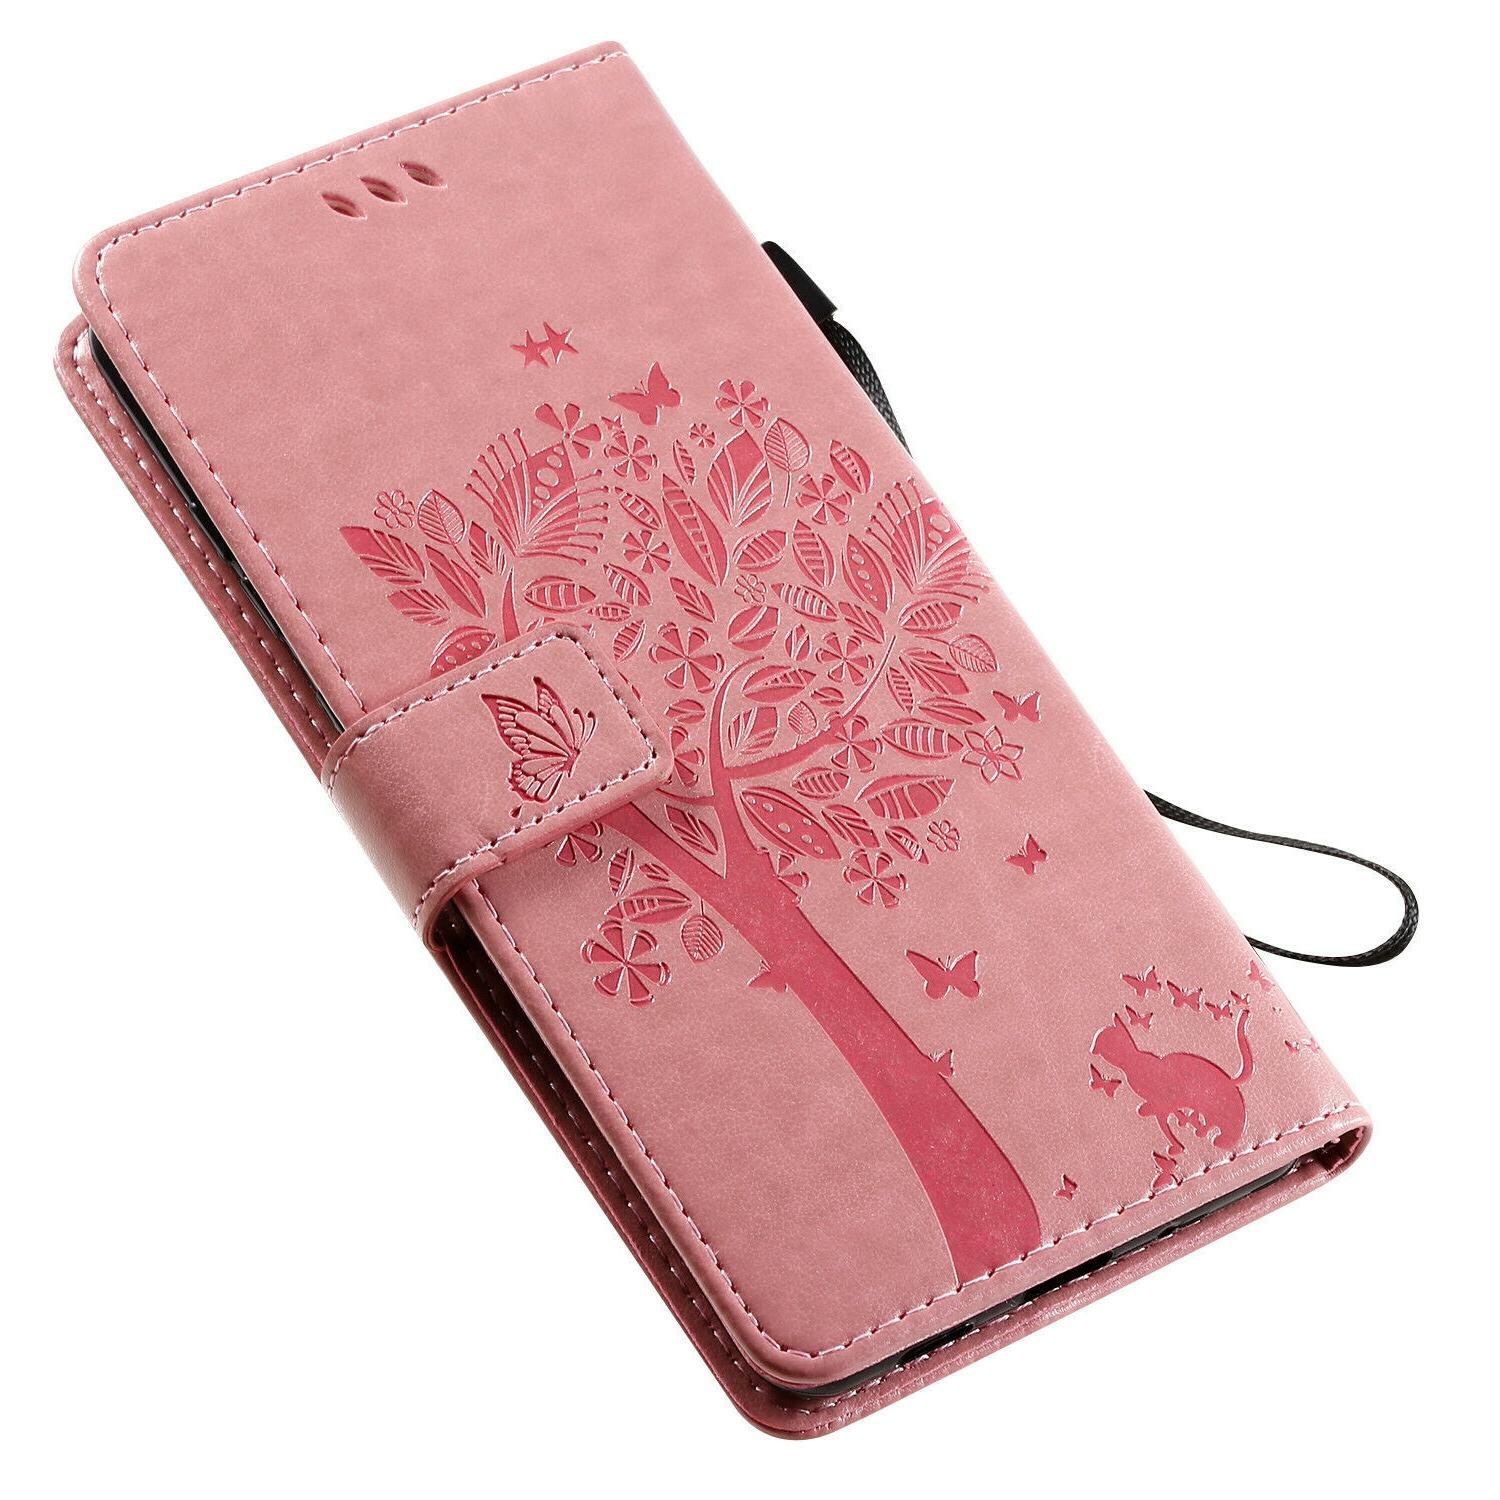 Leather Wallet Samsung S20 Note 8 S8S9 S10 5G S10e A51 A71